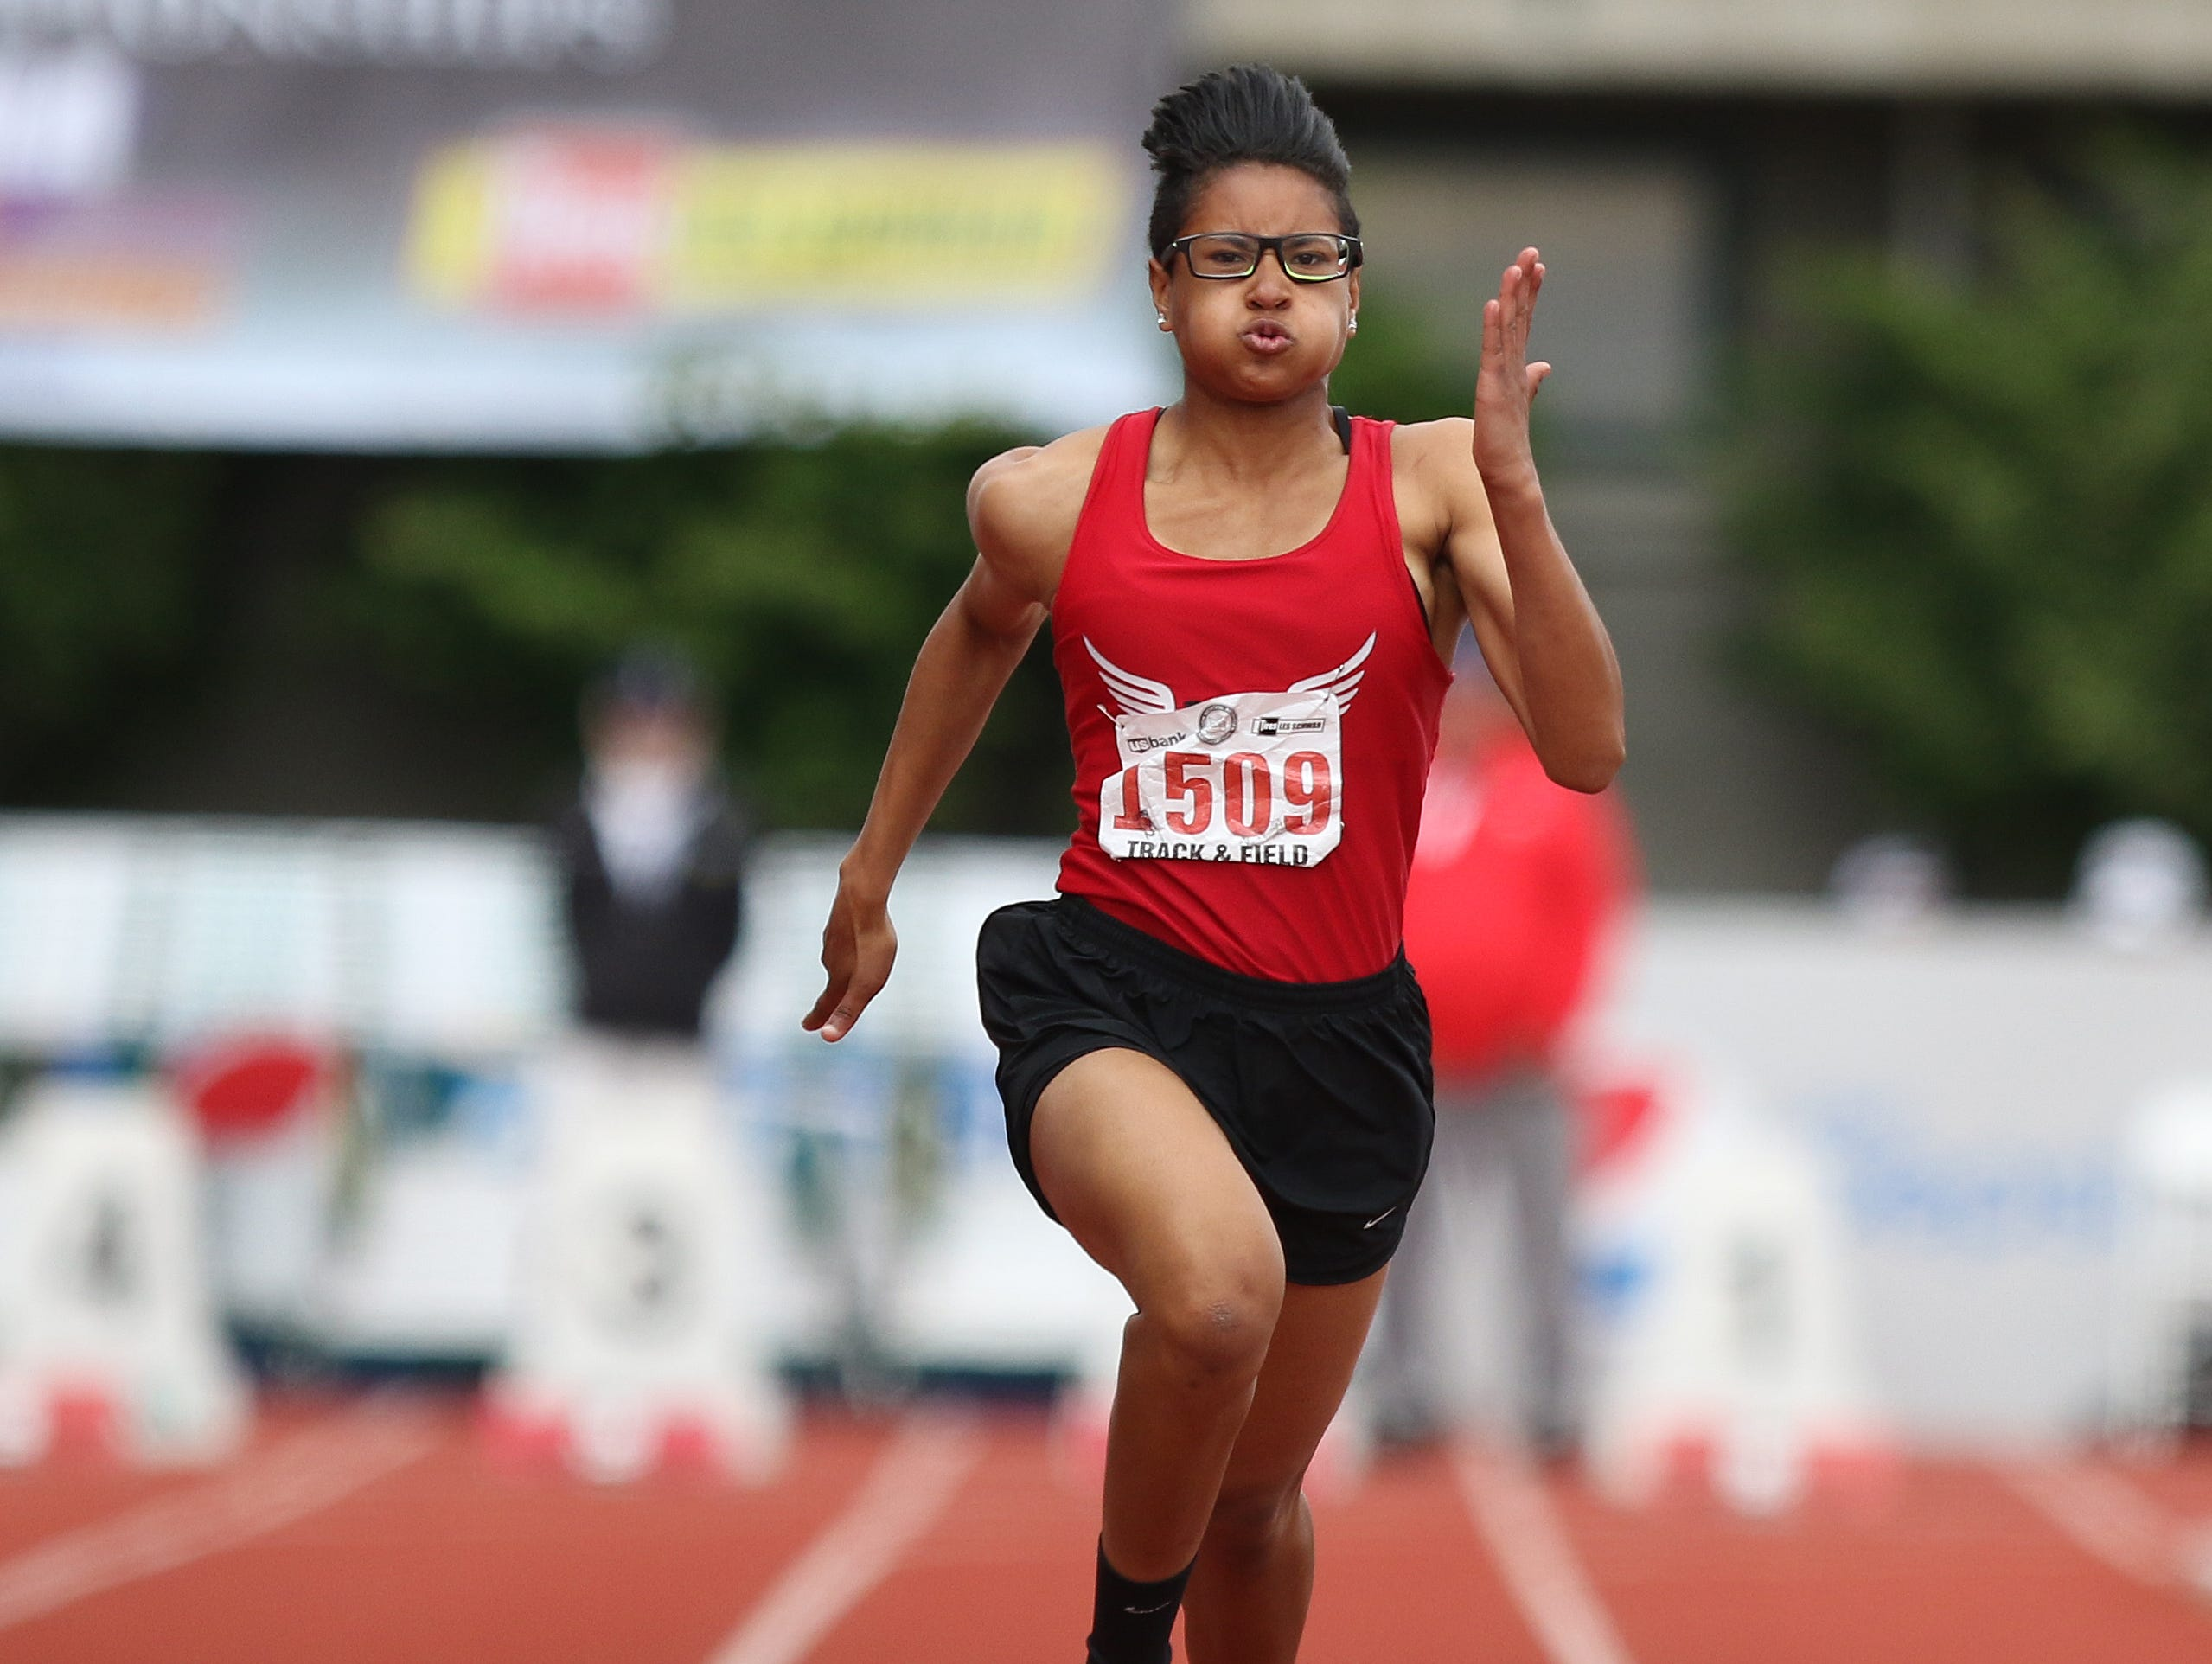 North Salem's Rebekah Miller competes in the 100 meters during the final day of the OSAA Track and Field State Championships at Hayward Field in Eugene, Oregon.